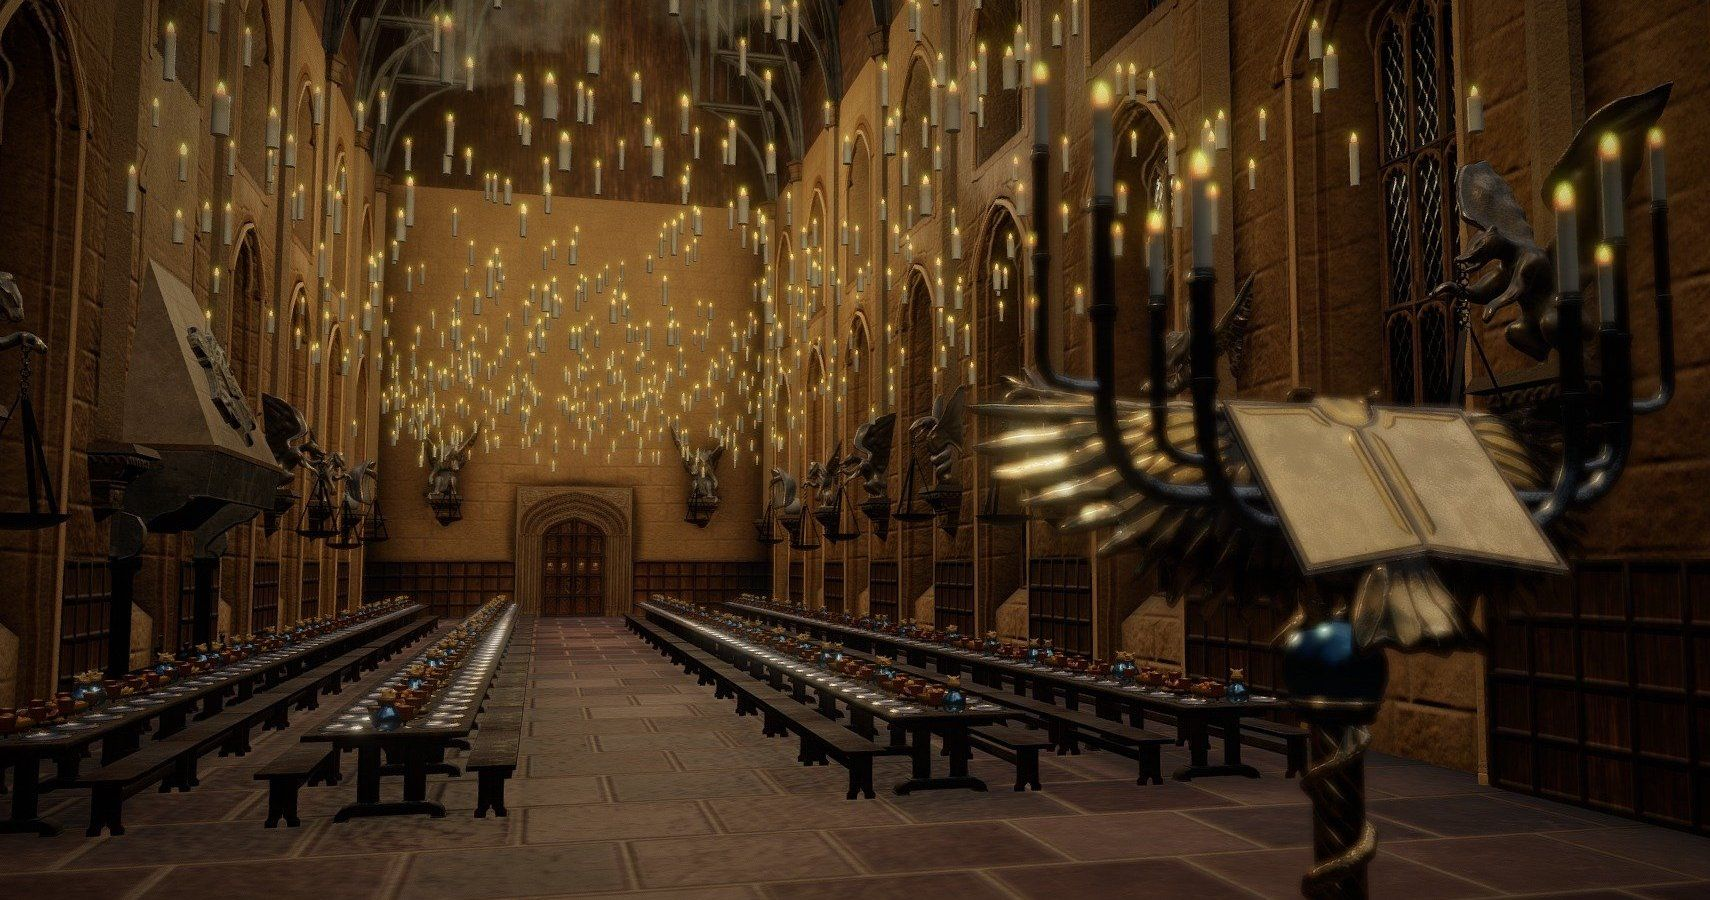 Harry Potter: 10 Hidden Details You Missed About The Great Hall